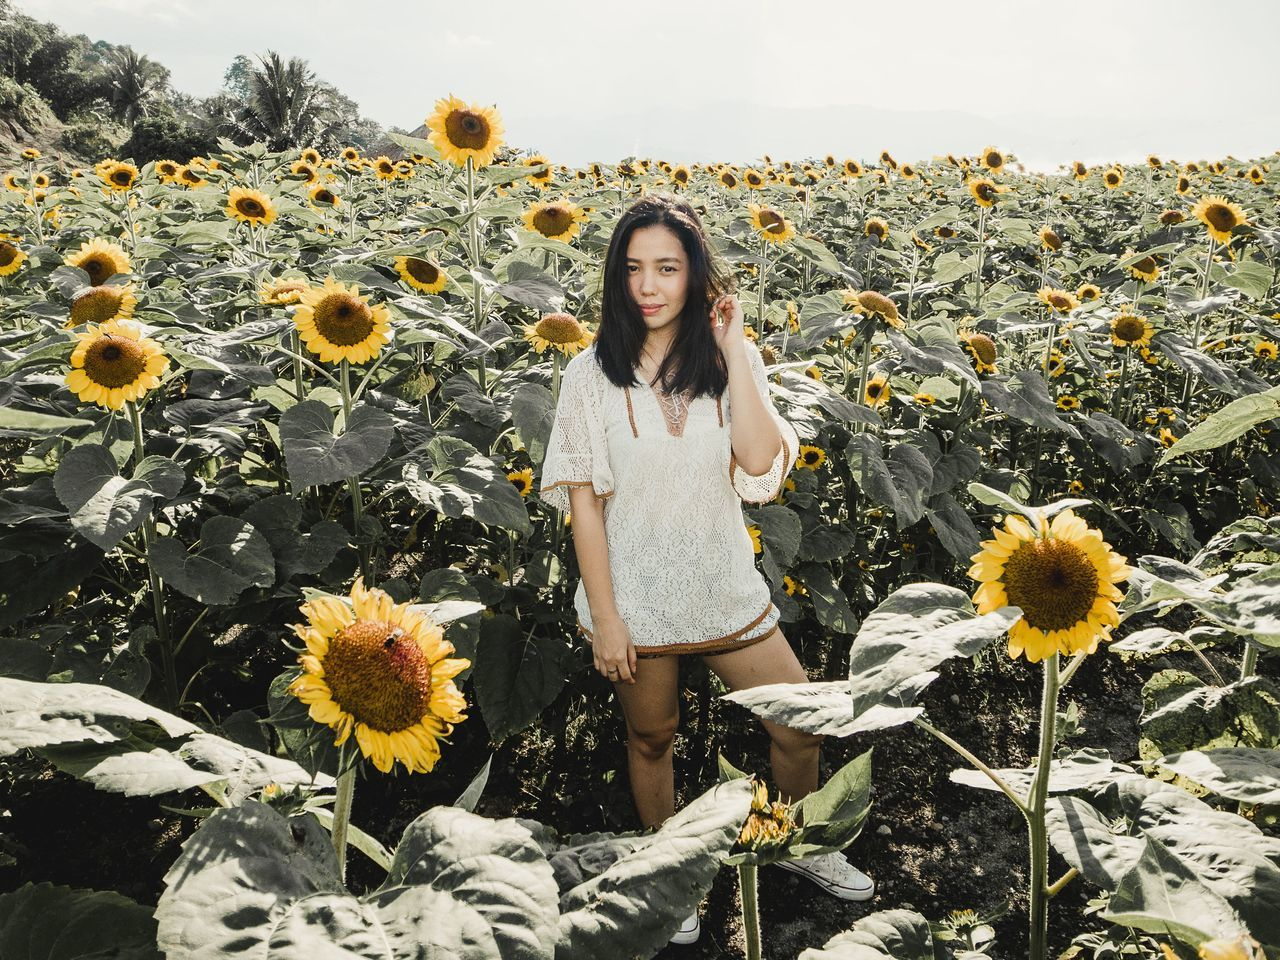 Art Asian  Beautifuk Eyeem Philippines Female Girl Love Outdoors Photography Portrait Ricoh Ricoh GRD III Sunflowers The Portraitist - 2017 EyeEm Awards The Week On EyeEm Woman